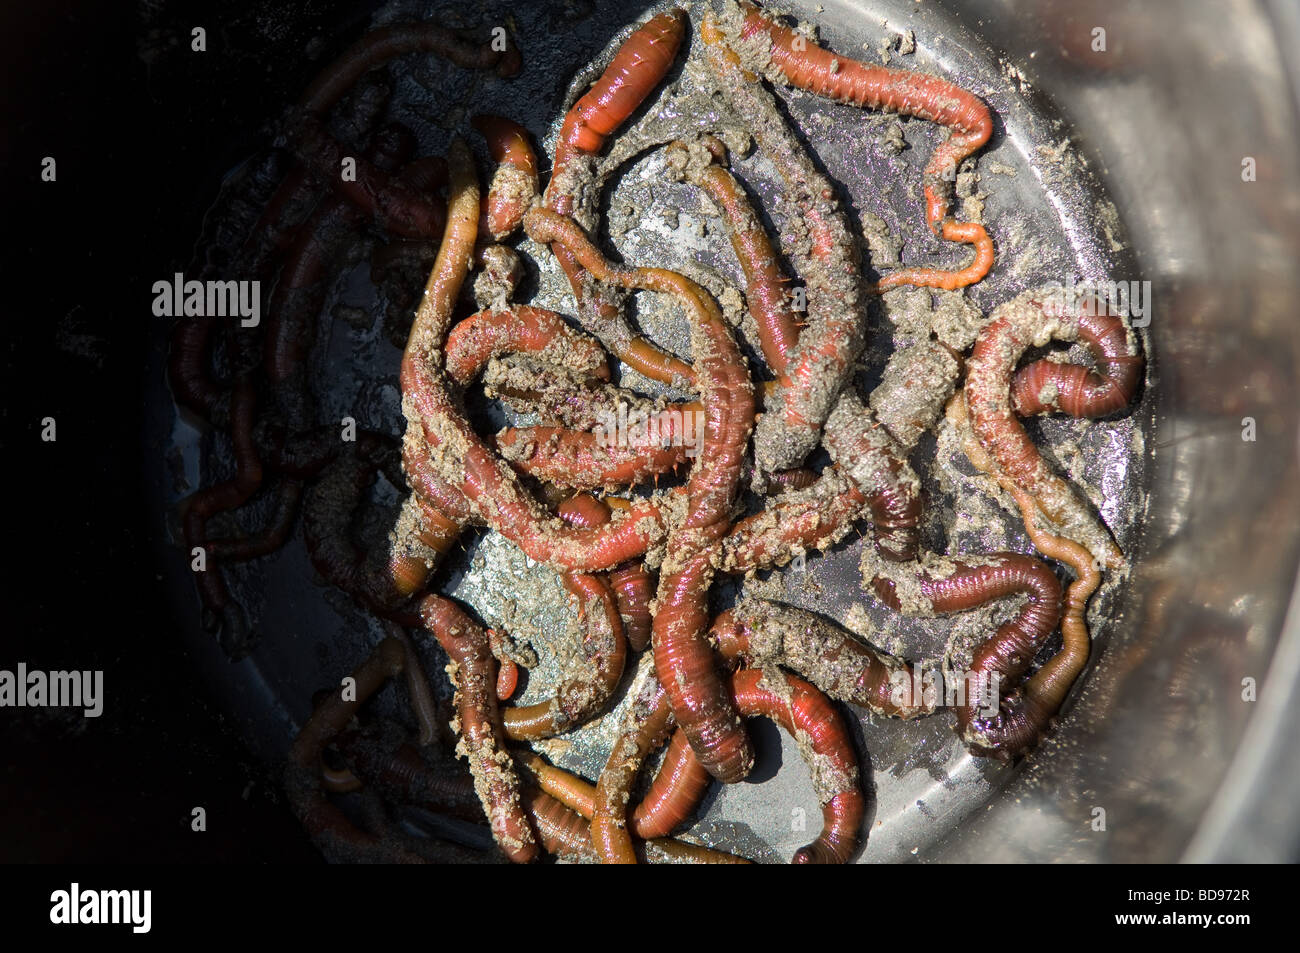 Fresh Lugworms dug from the beach at low tide - Stock Image